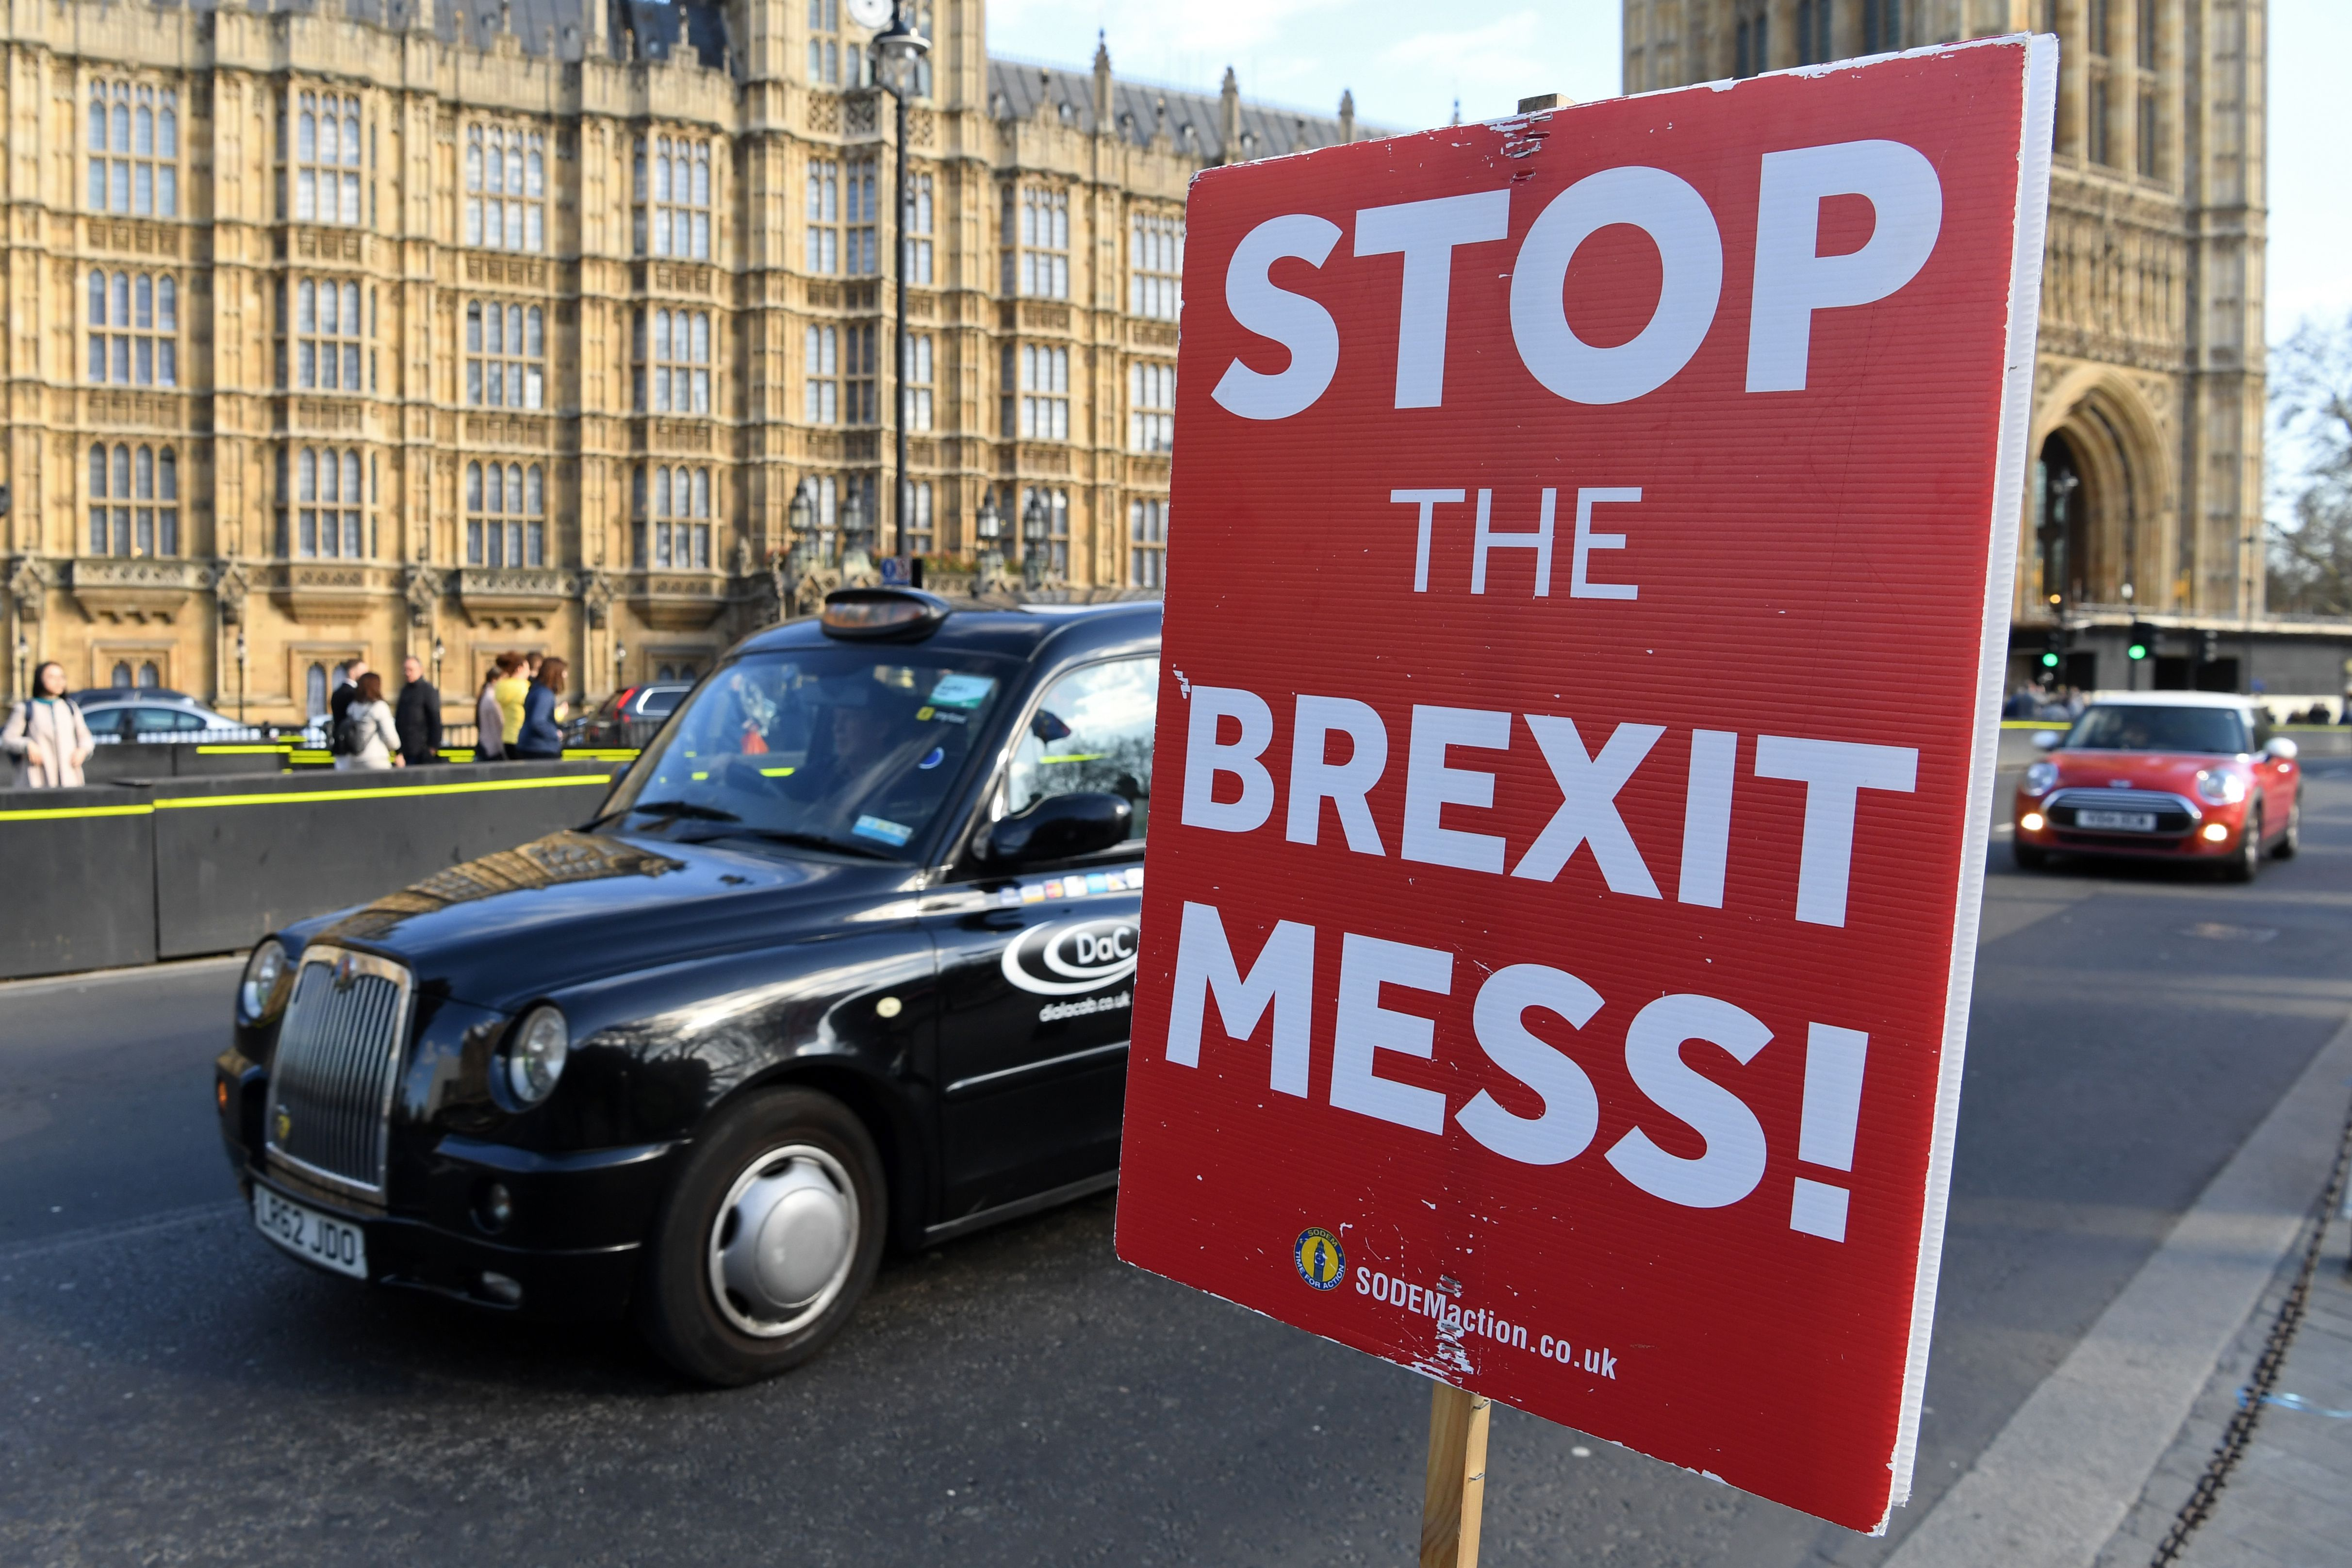 BREXIT BLUES: The ongoing delay in leaving the EU has angered Britain (Pic credit: PAUL ELLIS/AFP/Getty Images)